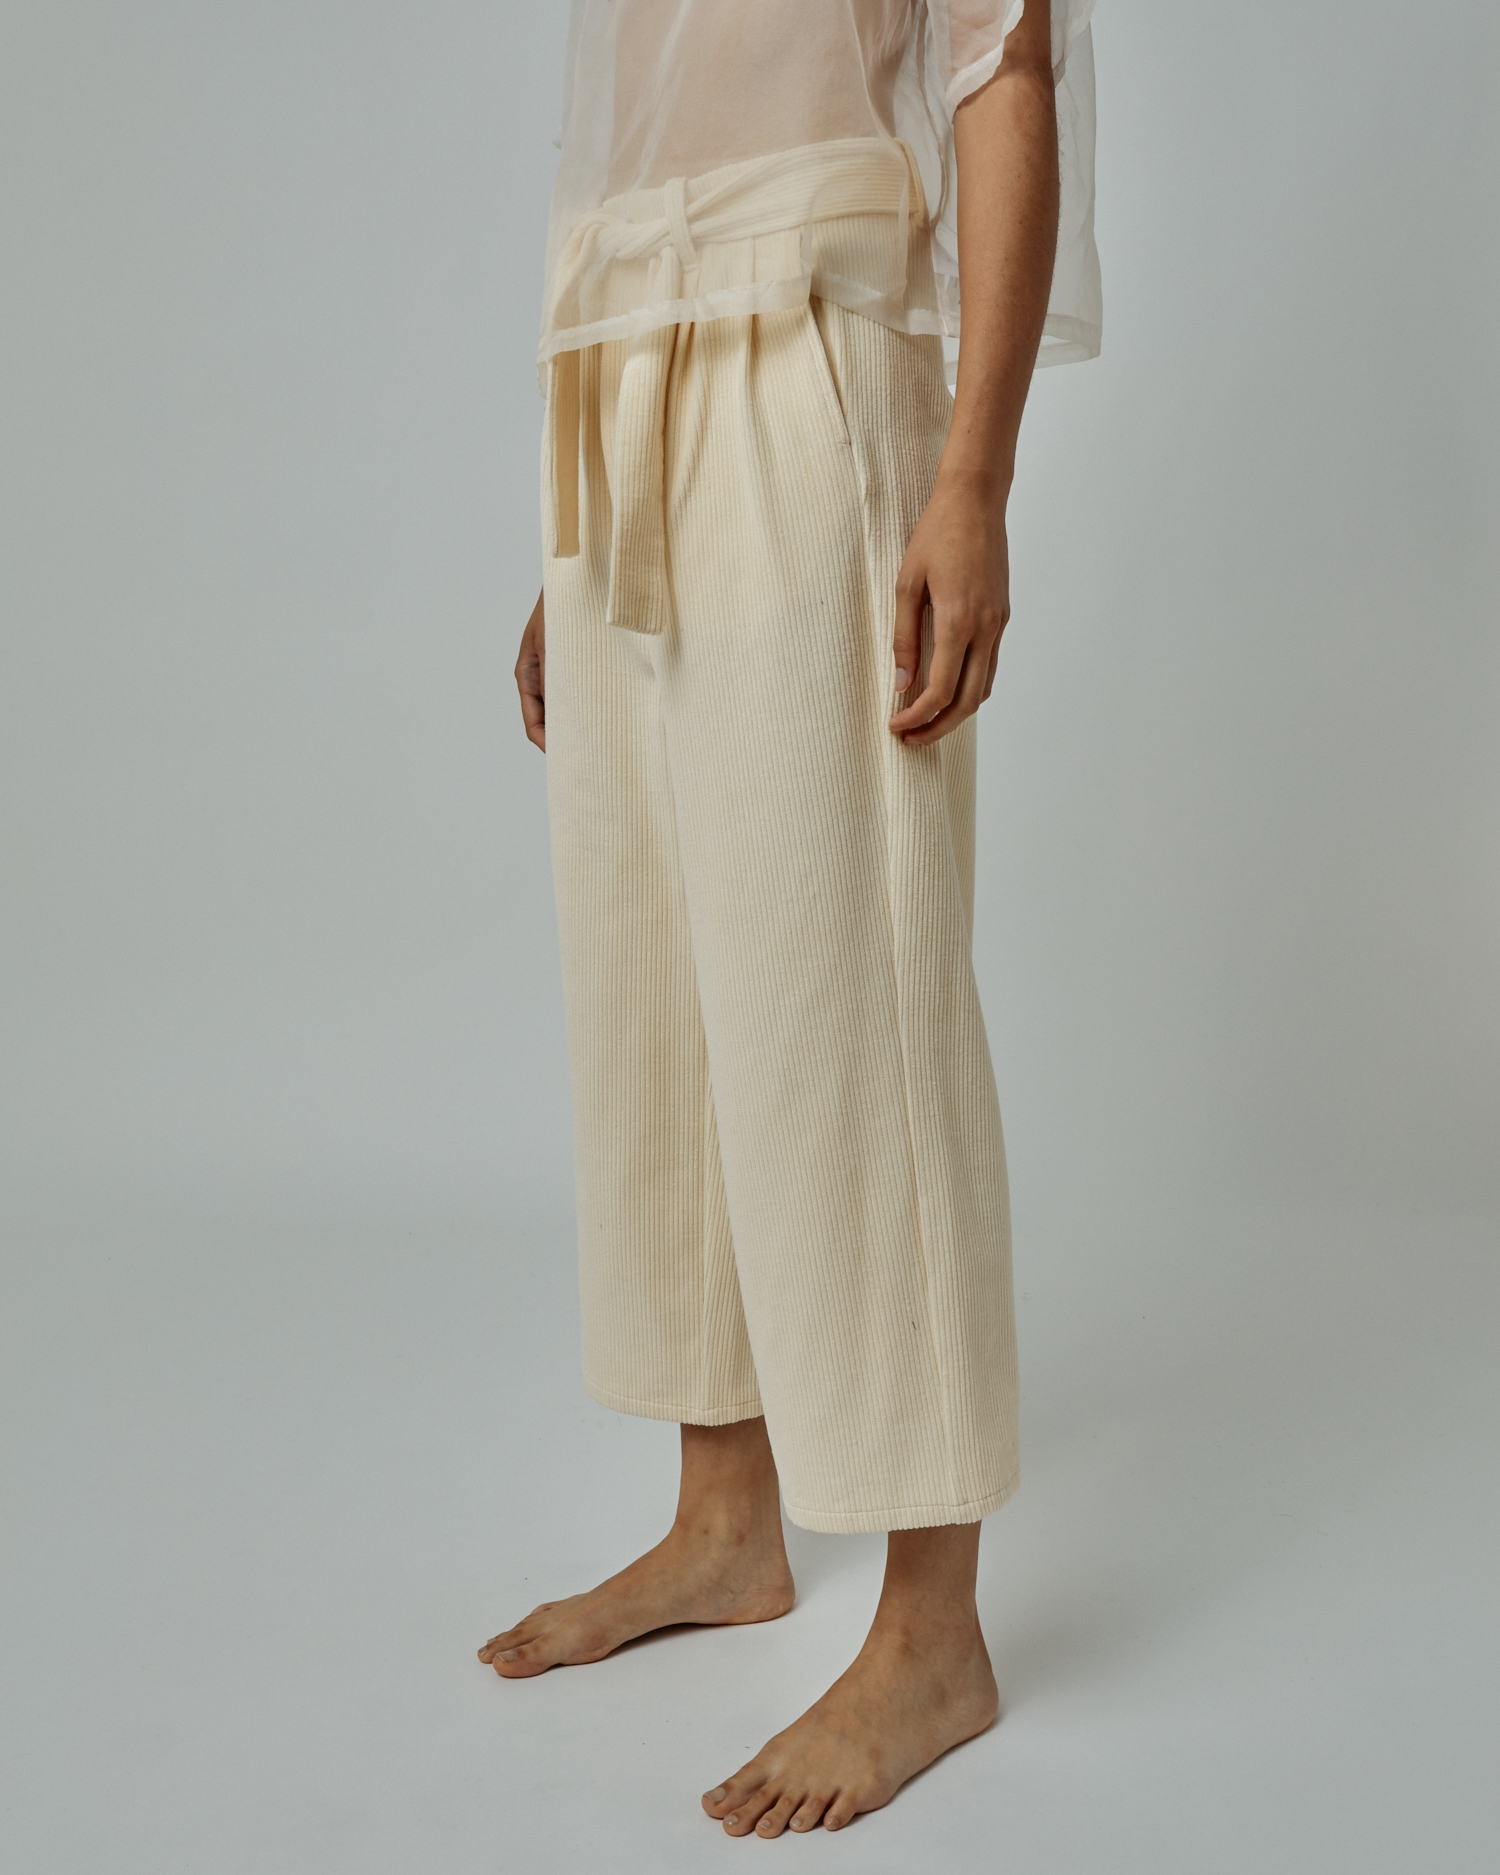 Shop Genderless Pants Designed And Made In The USA